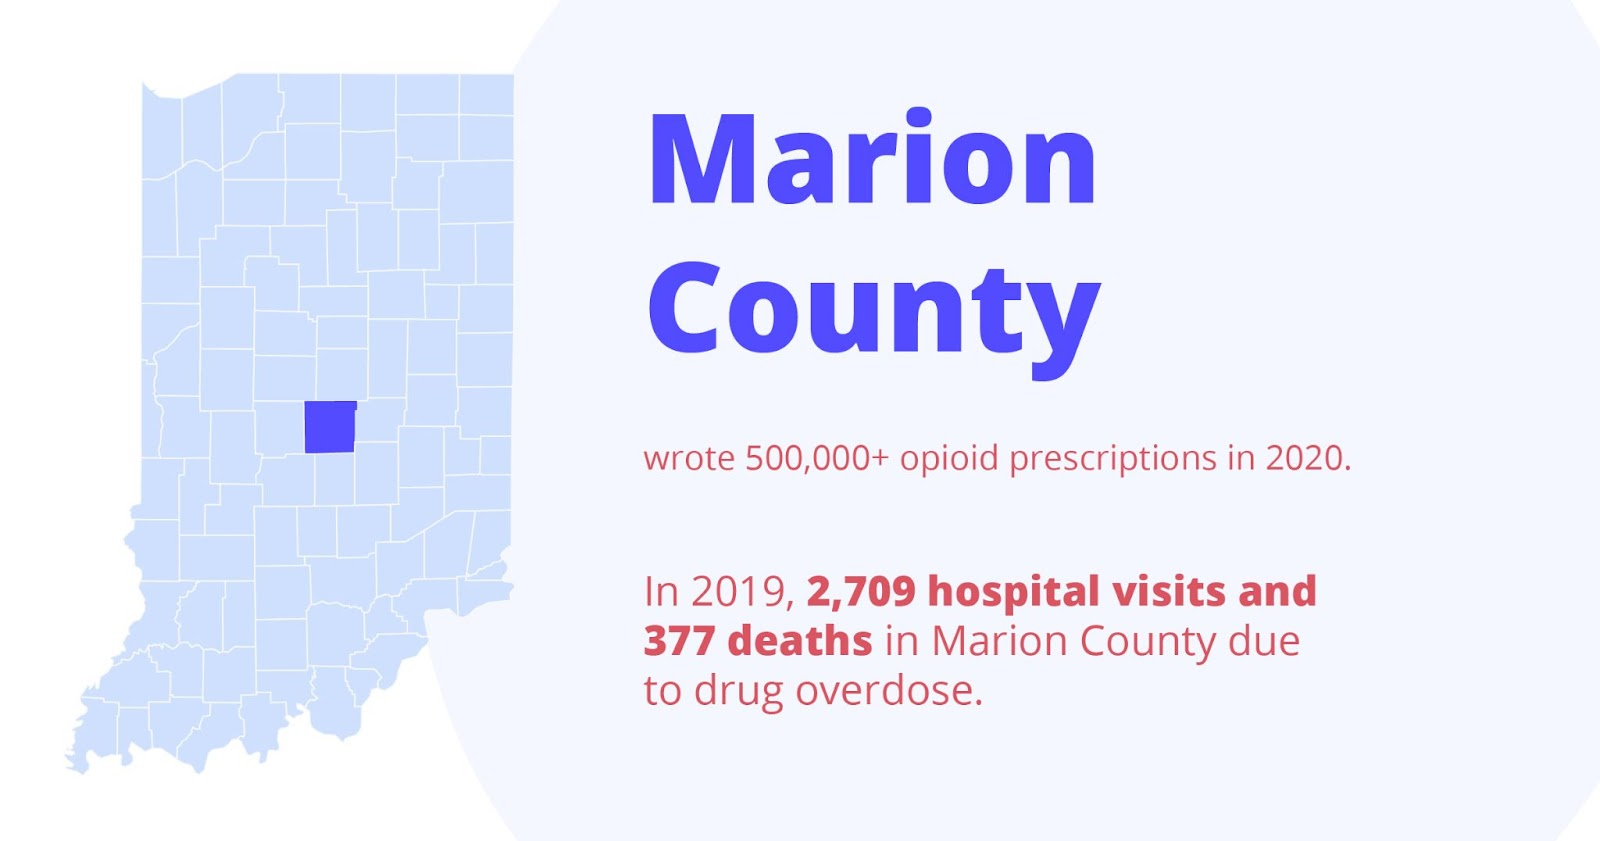 Marion county wrote 500,000+ opioid prescriptions in 2020. In 2019, 2,709 hospital visits and 377 deaths in marion county due to drug overdose